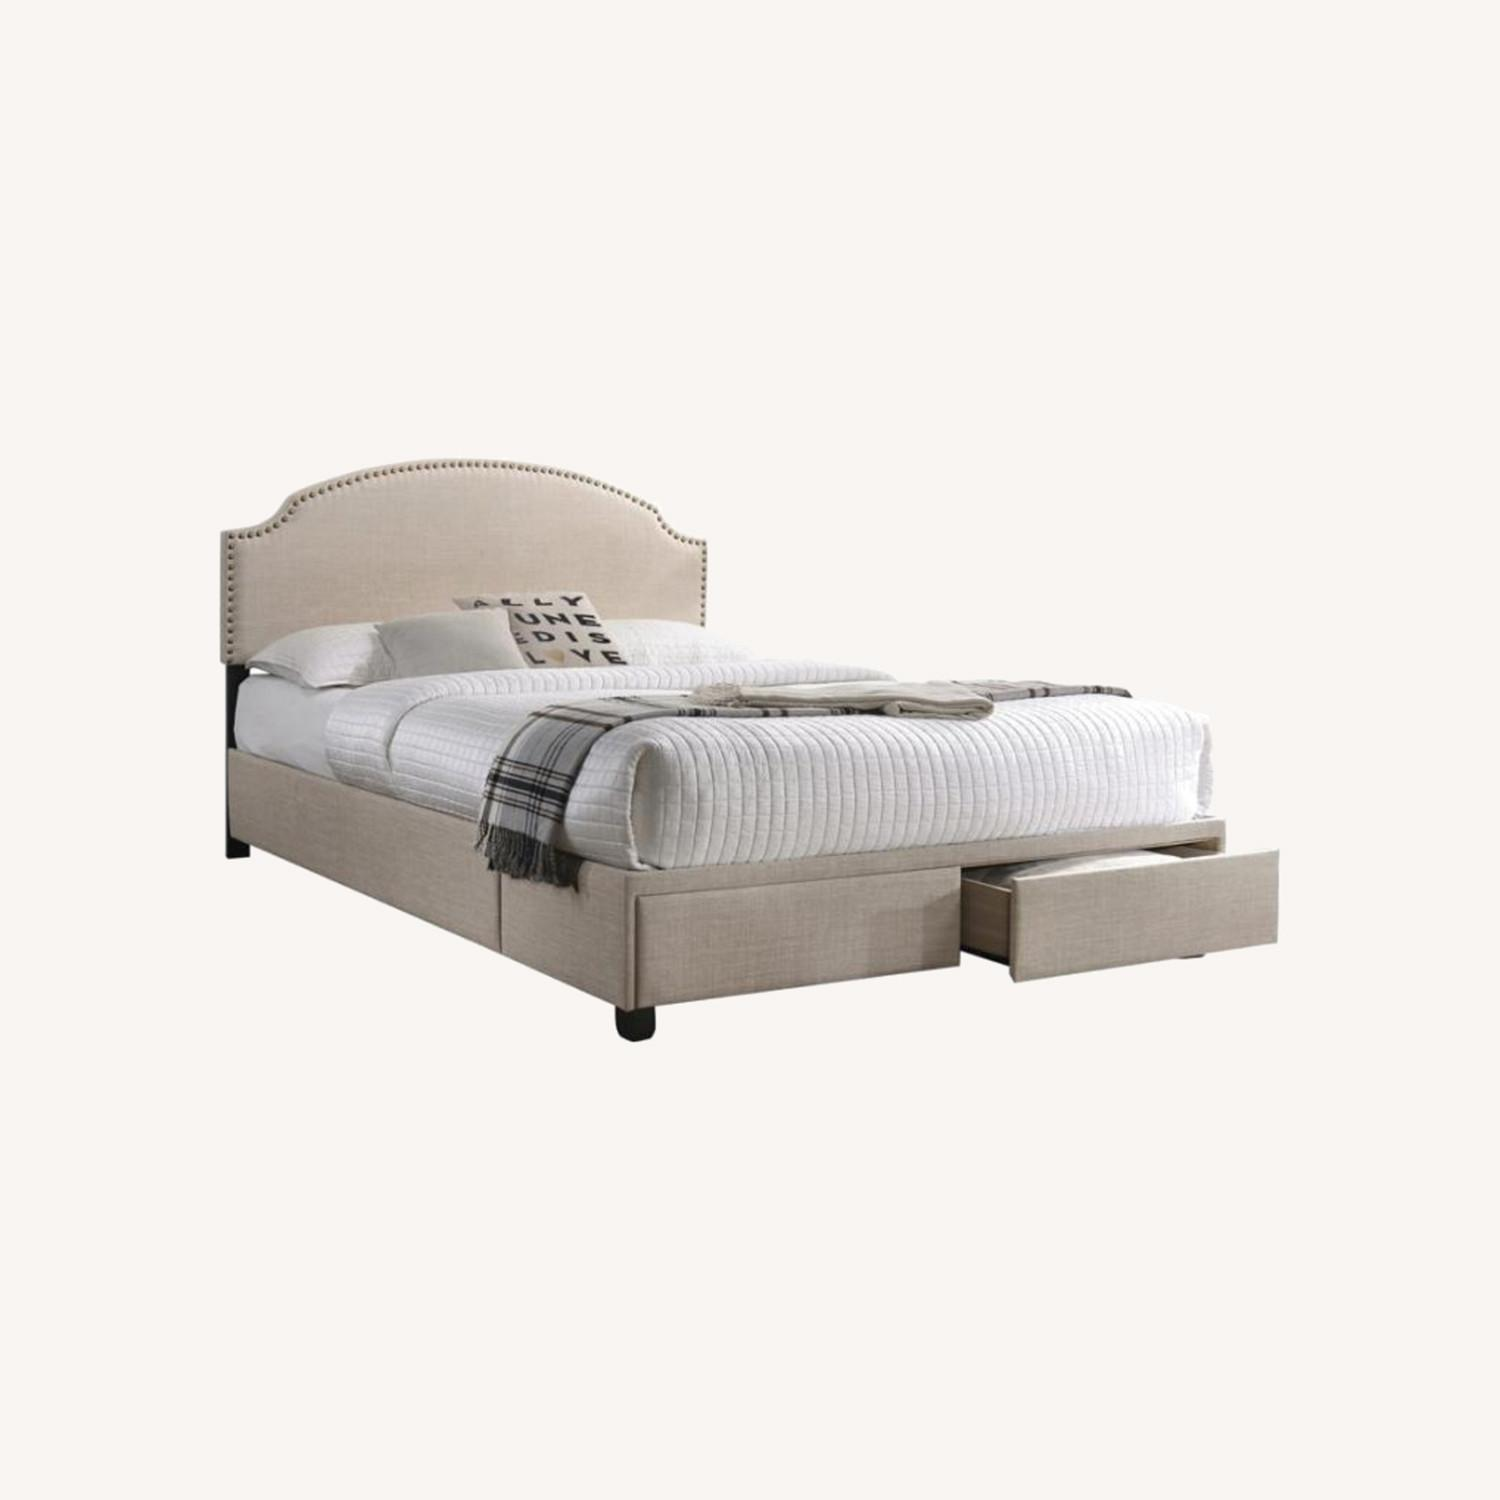 King Bed In Beige Fabric W/ 2 Storage Drawers - image-4